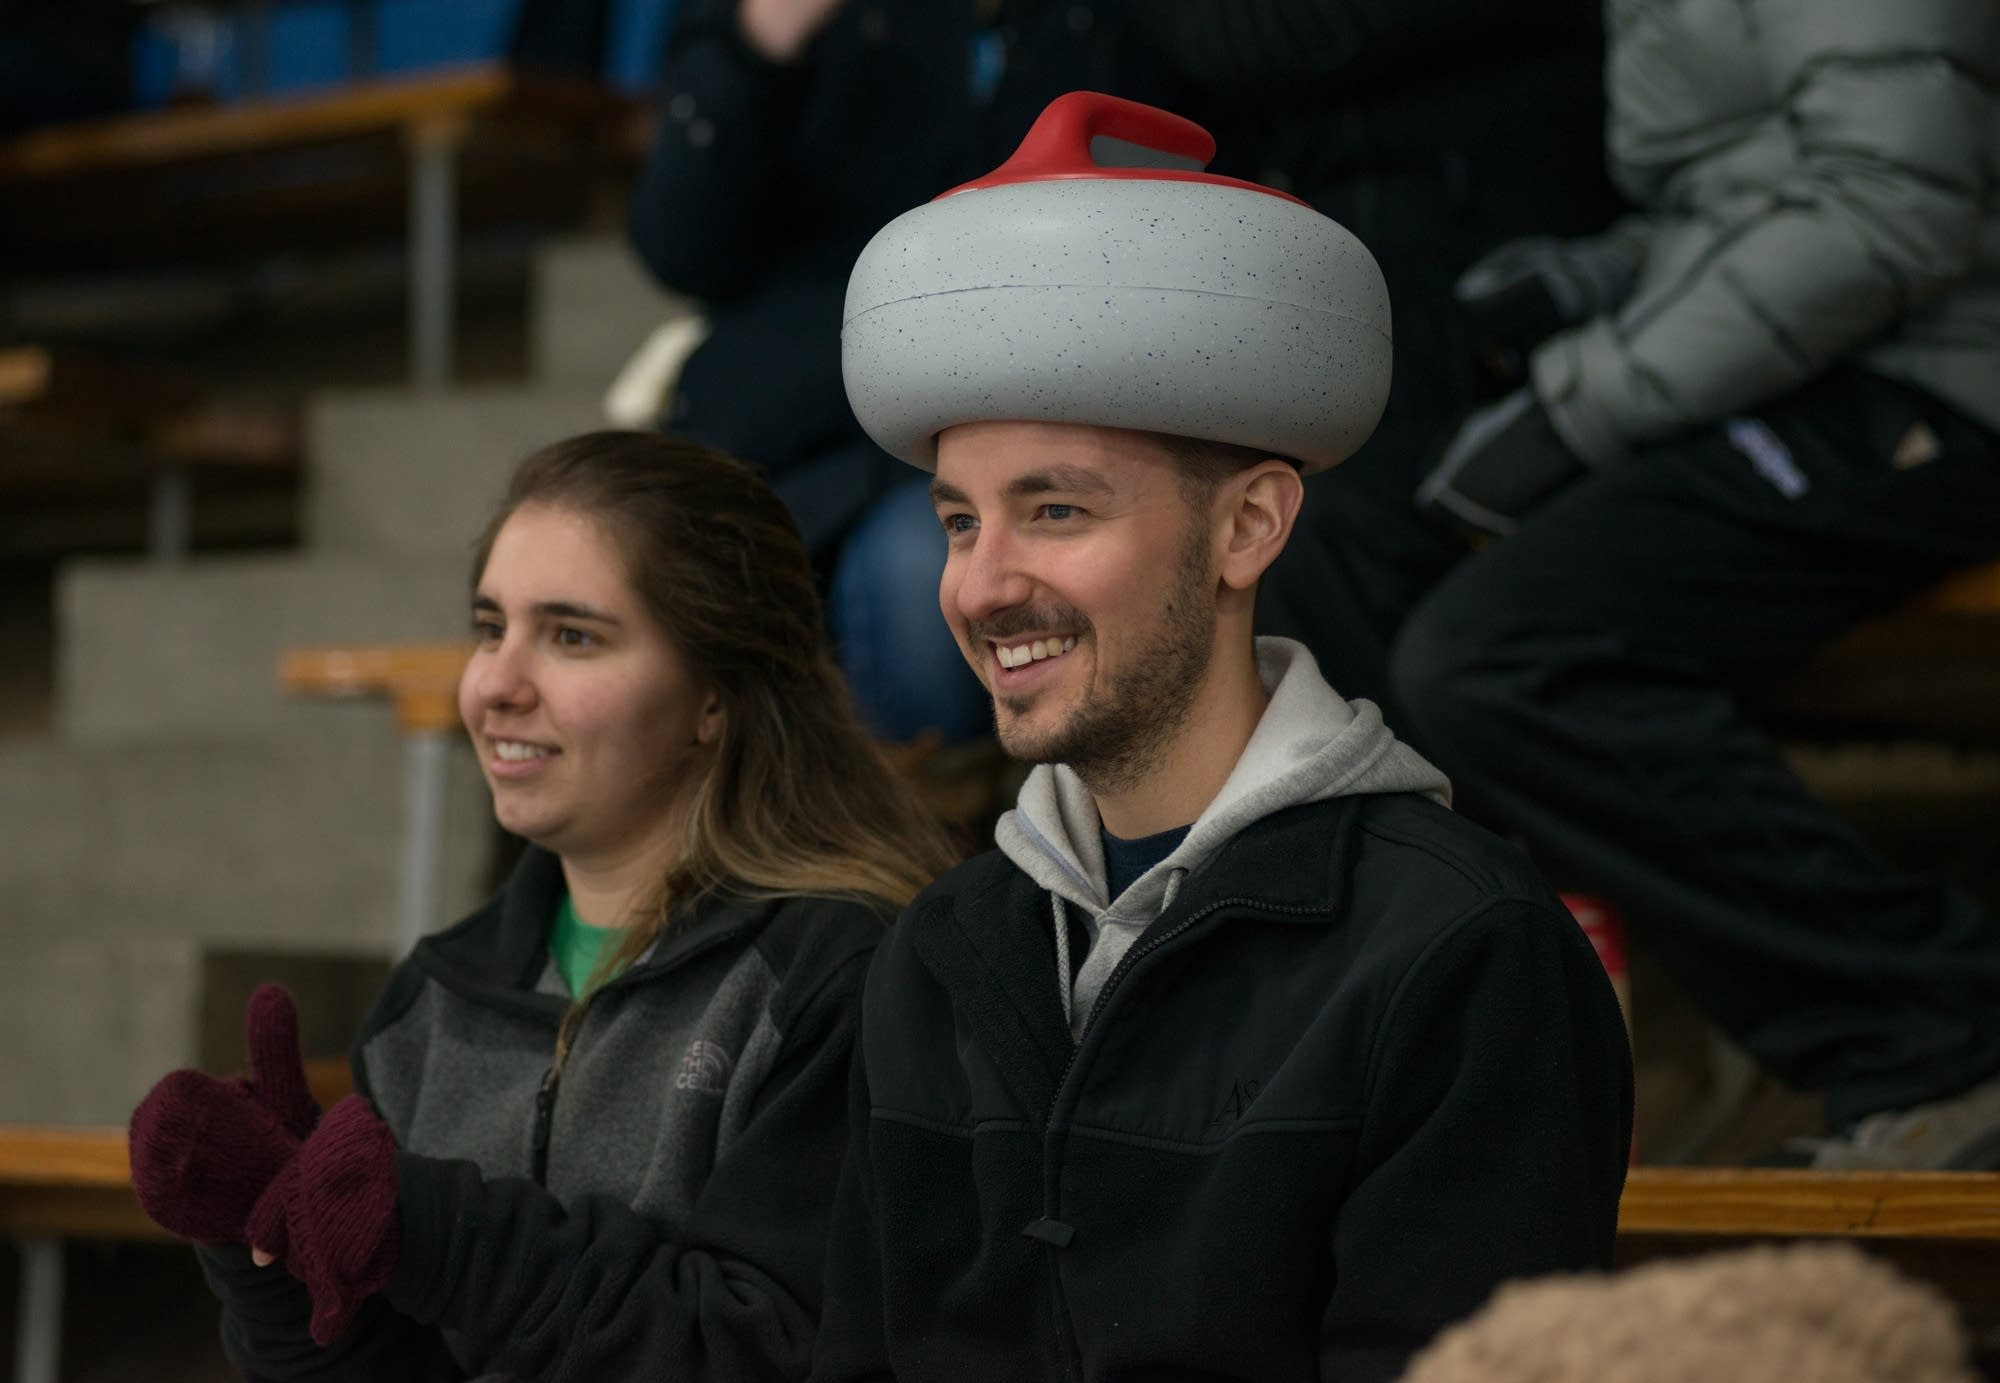 Matthew Ammon watches the finals  in his curling stone hat.